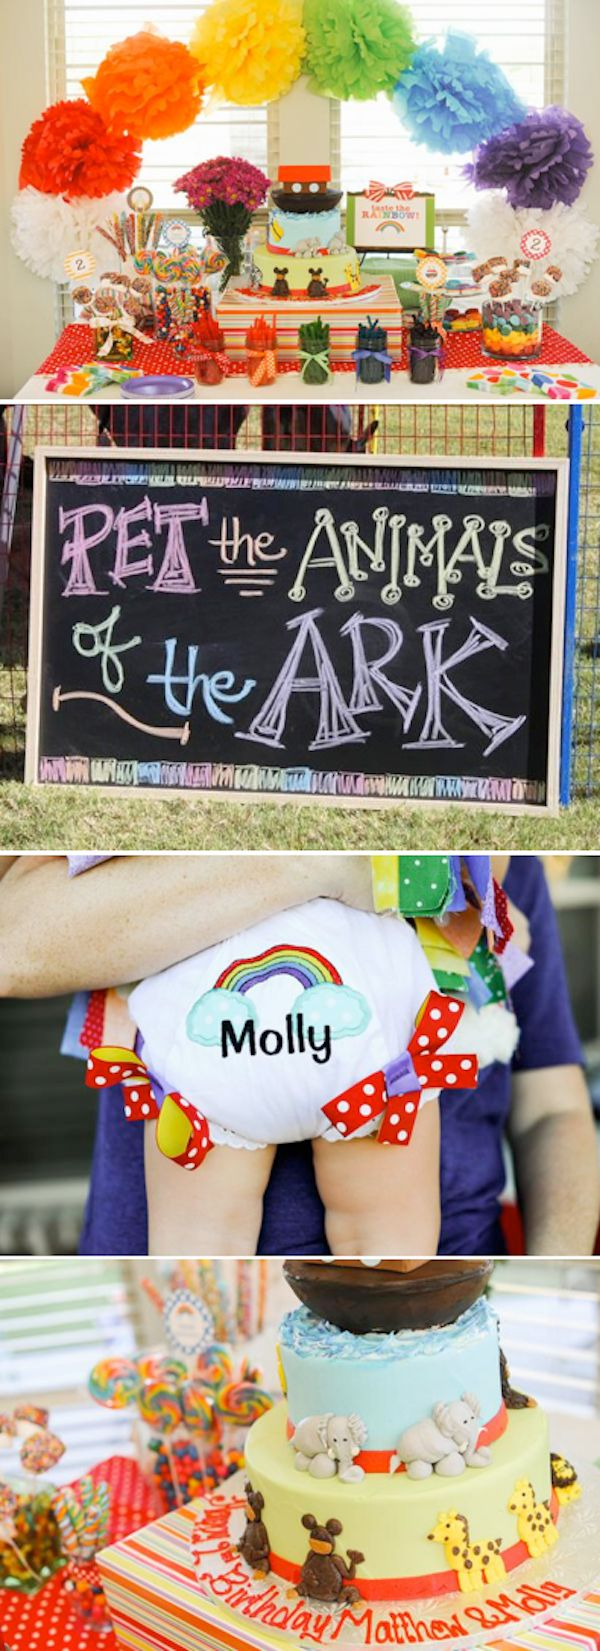 noahs ark party ideas | party via Kara's Party Ideas KarasPartyIdeas.com #noah's #ark #party ...